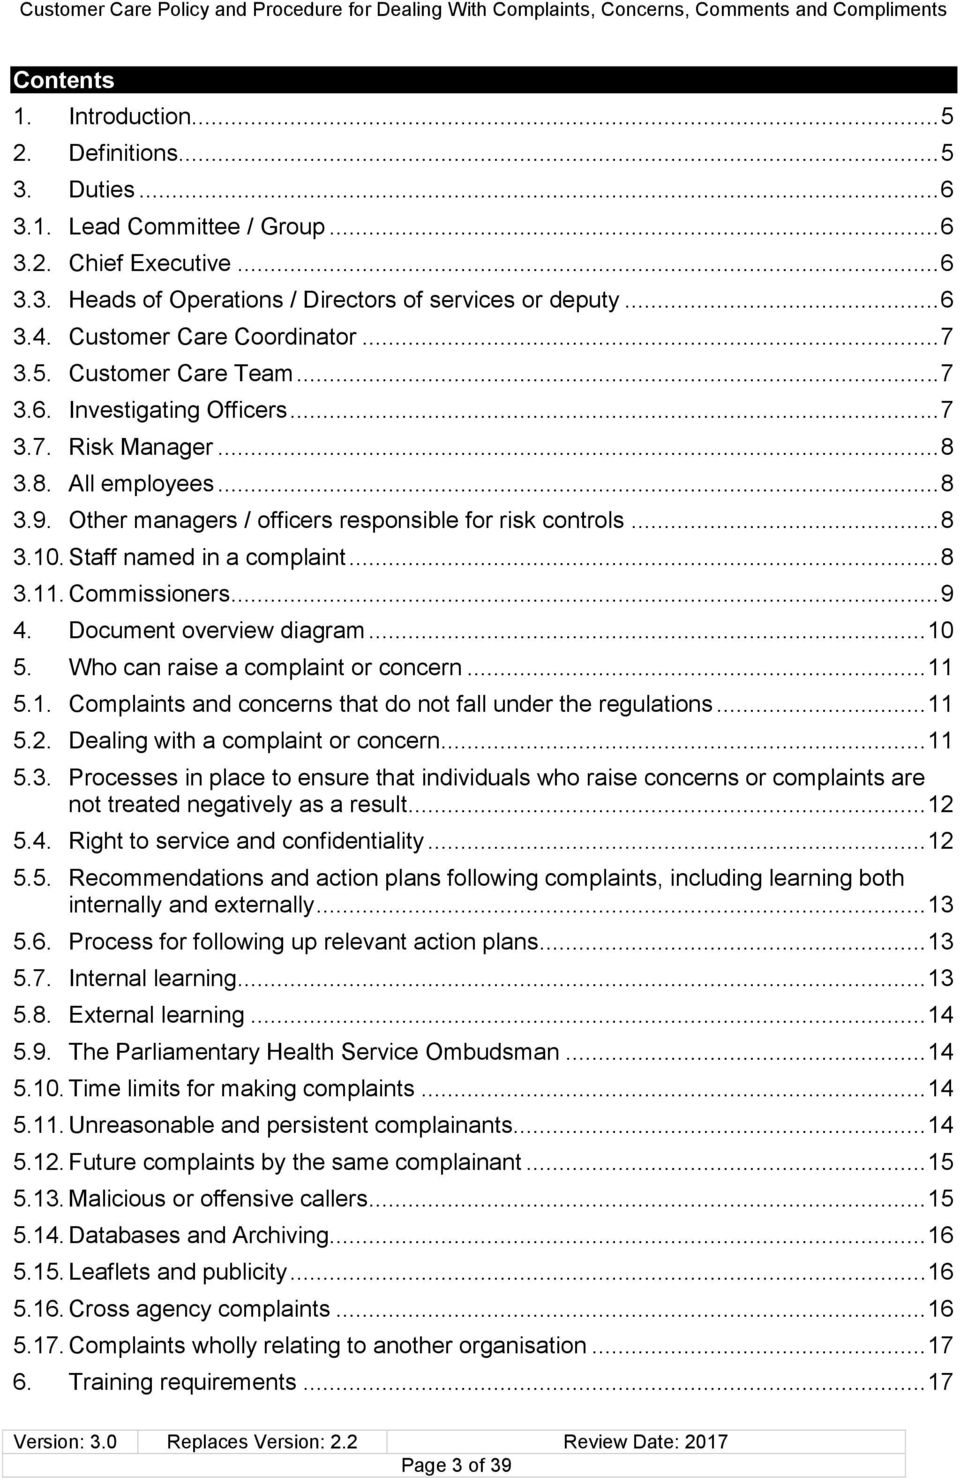 Other managers / officers responsible for risk controls... 8 3.10. Staff named in a complaint... 8 3.11. Commissioners... 9 4. Document overview diagram... 10 5. Who can raise a complaint or concern.